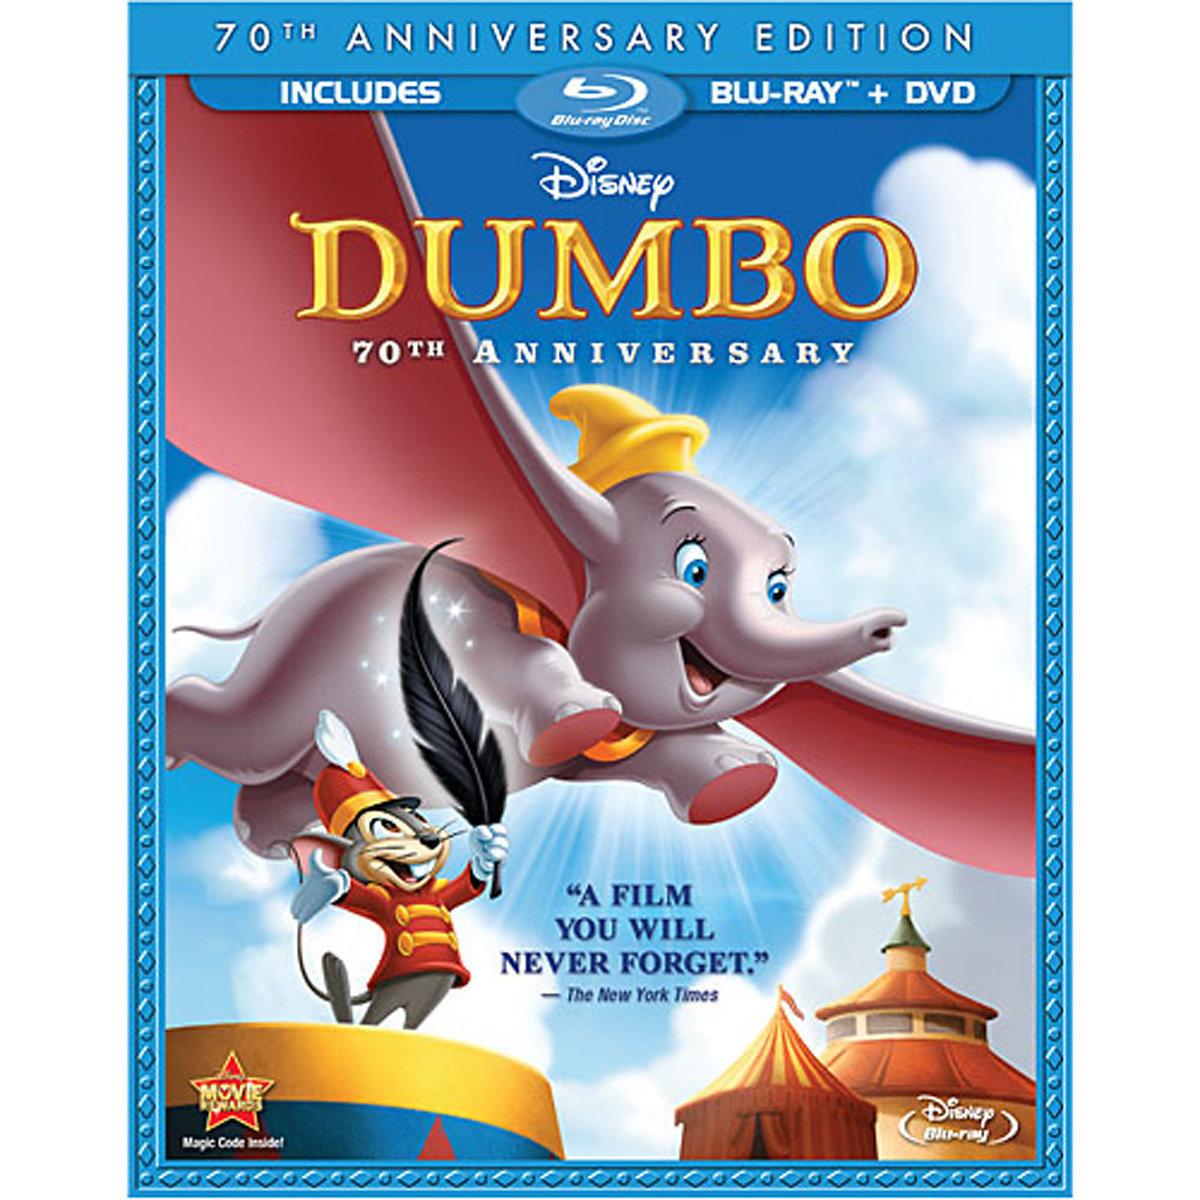 Dumbo (70th Anniversary Edition) (Blu-ray + DVD)